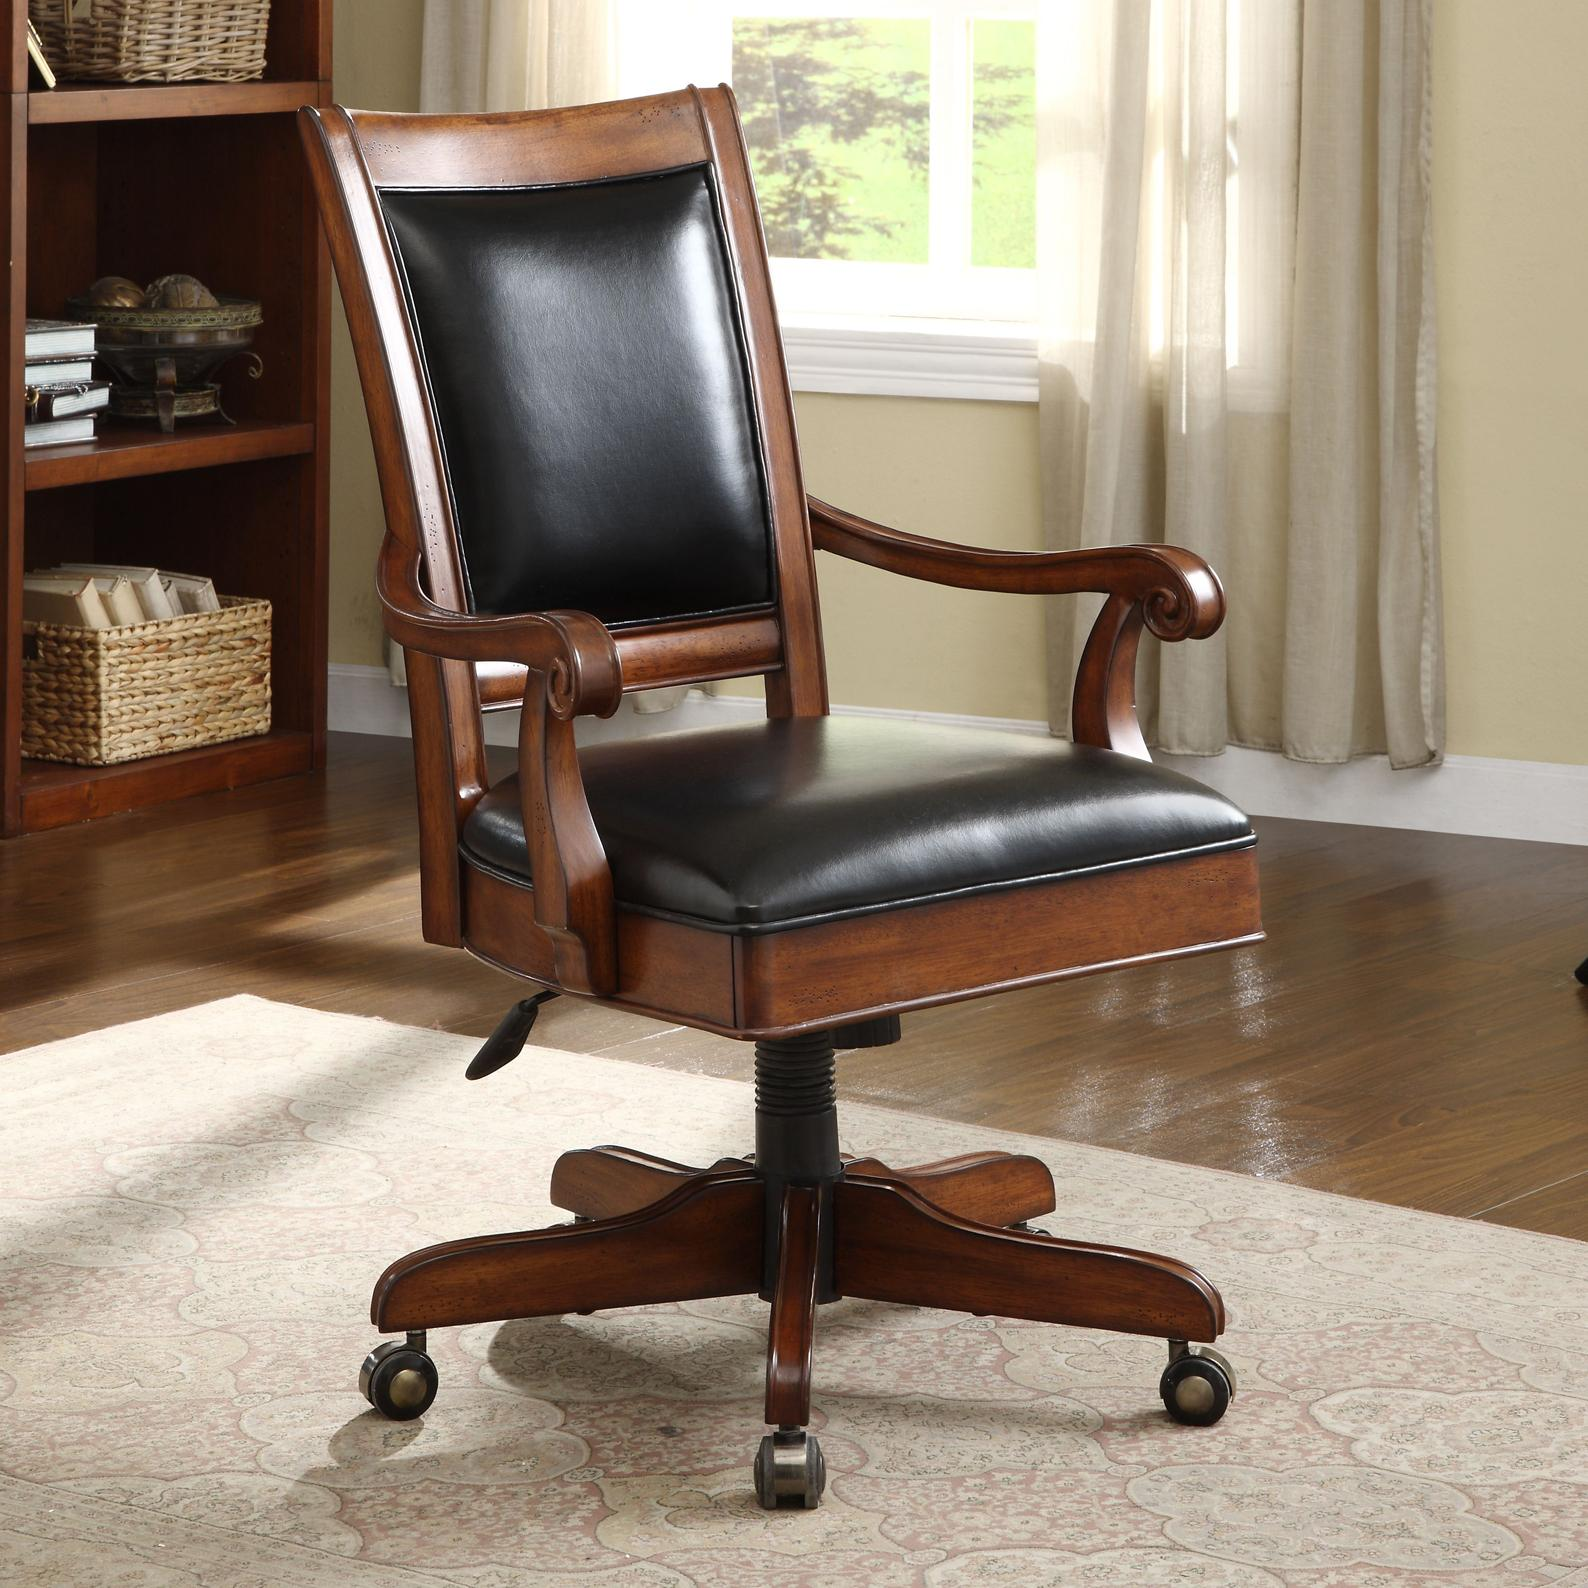 Desk Chairs Caster Equipped Wooden Desk Chair With Leather Covered